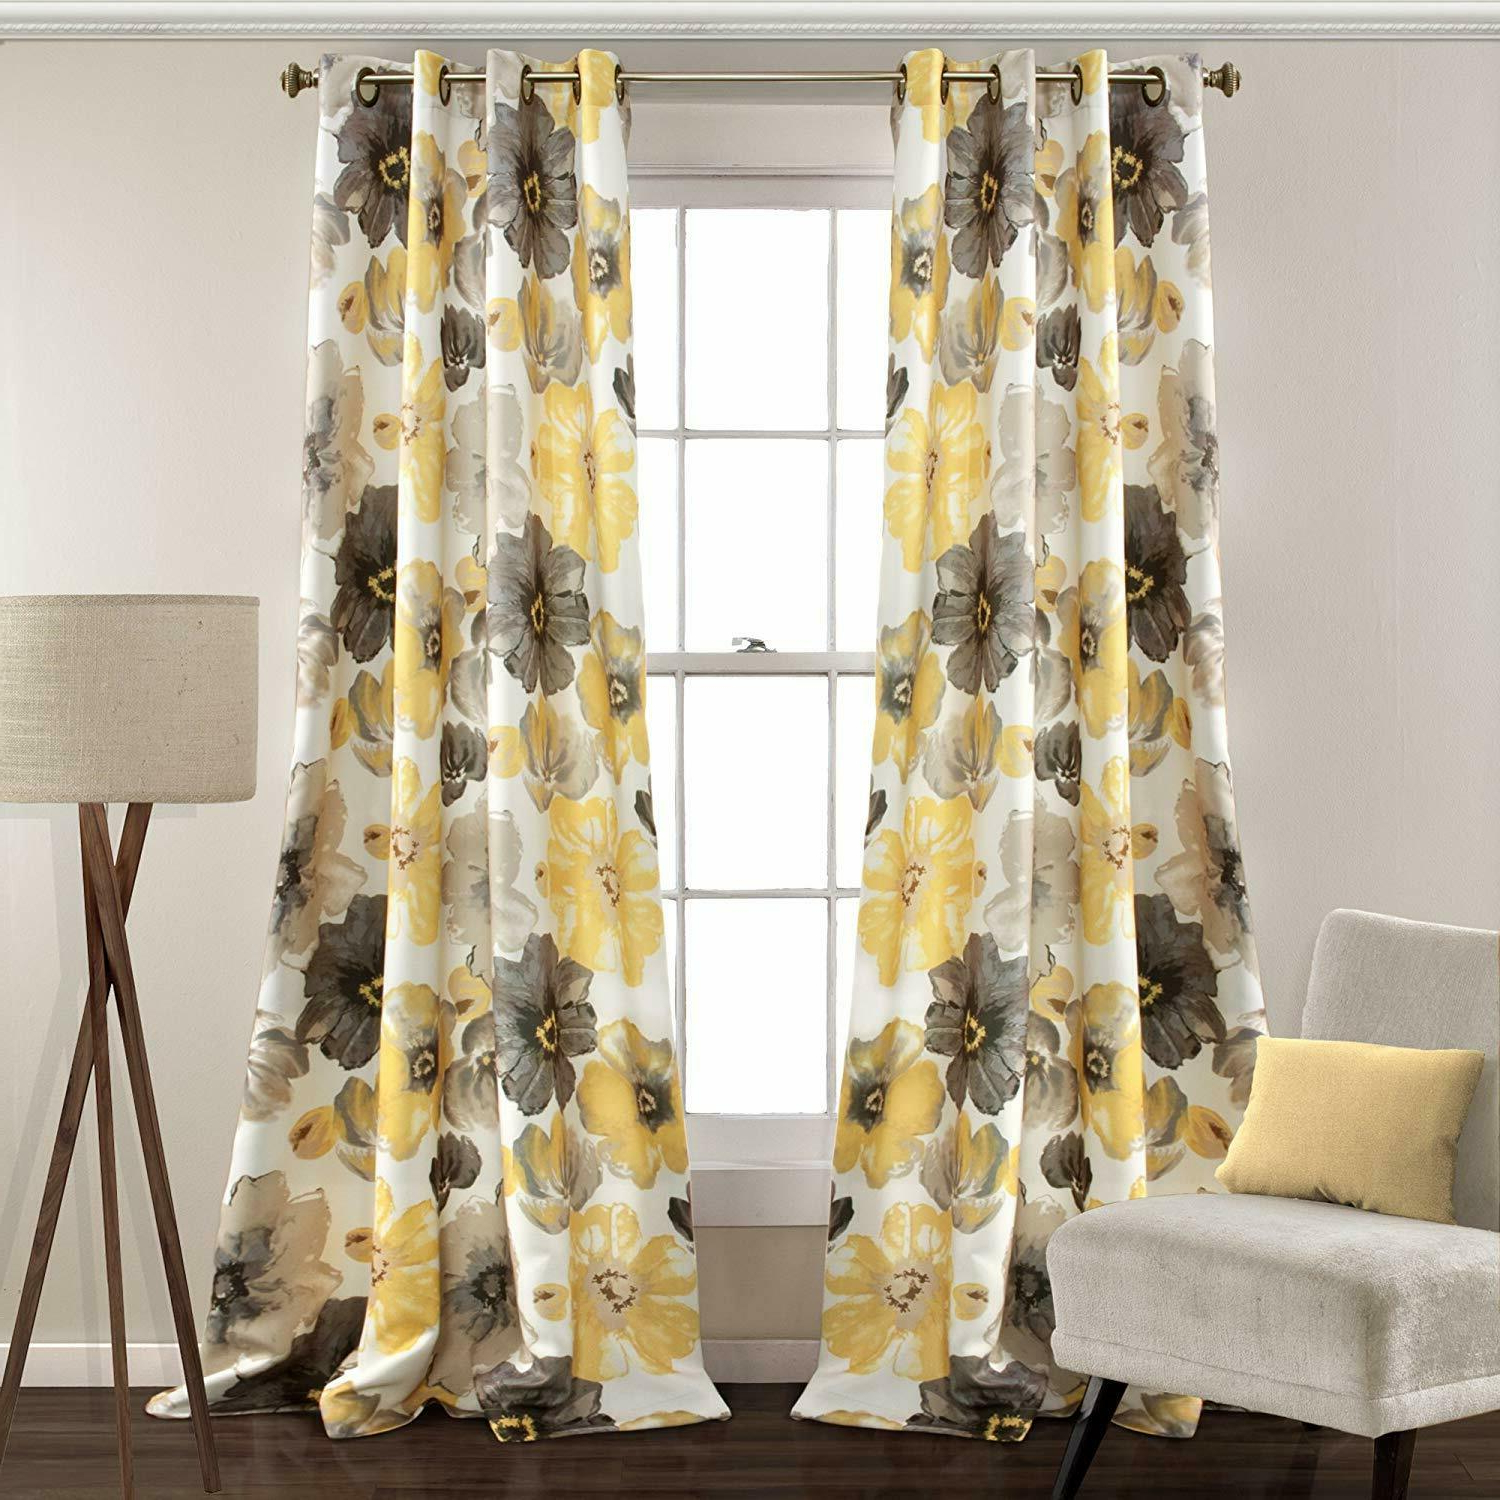 Lush Decor Leah Floral Room Darkening Window Curtains Panel Set Of 2 Pertaining To Popular Julia Striped Room Darkening Window Curtain Panel Pairs (Gallery 16 of 20)